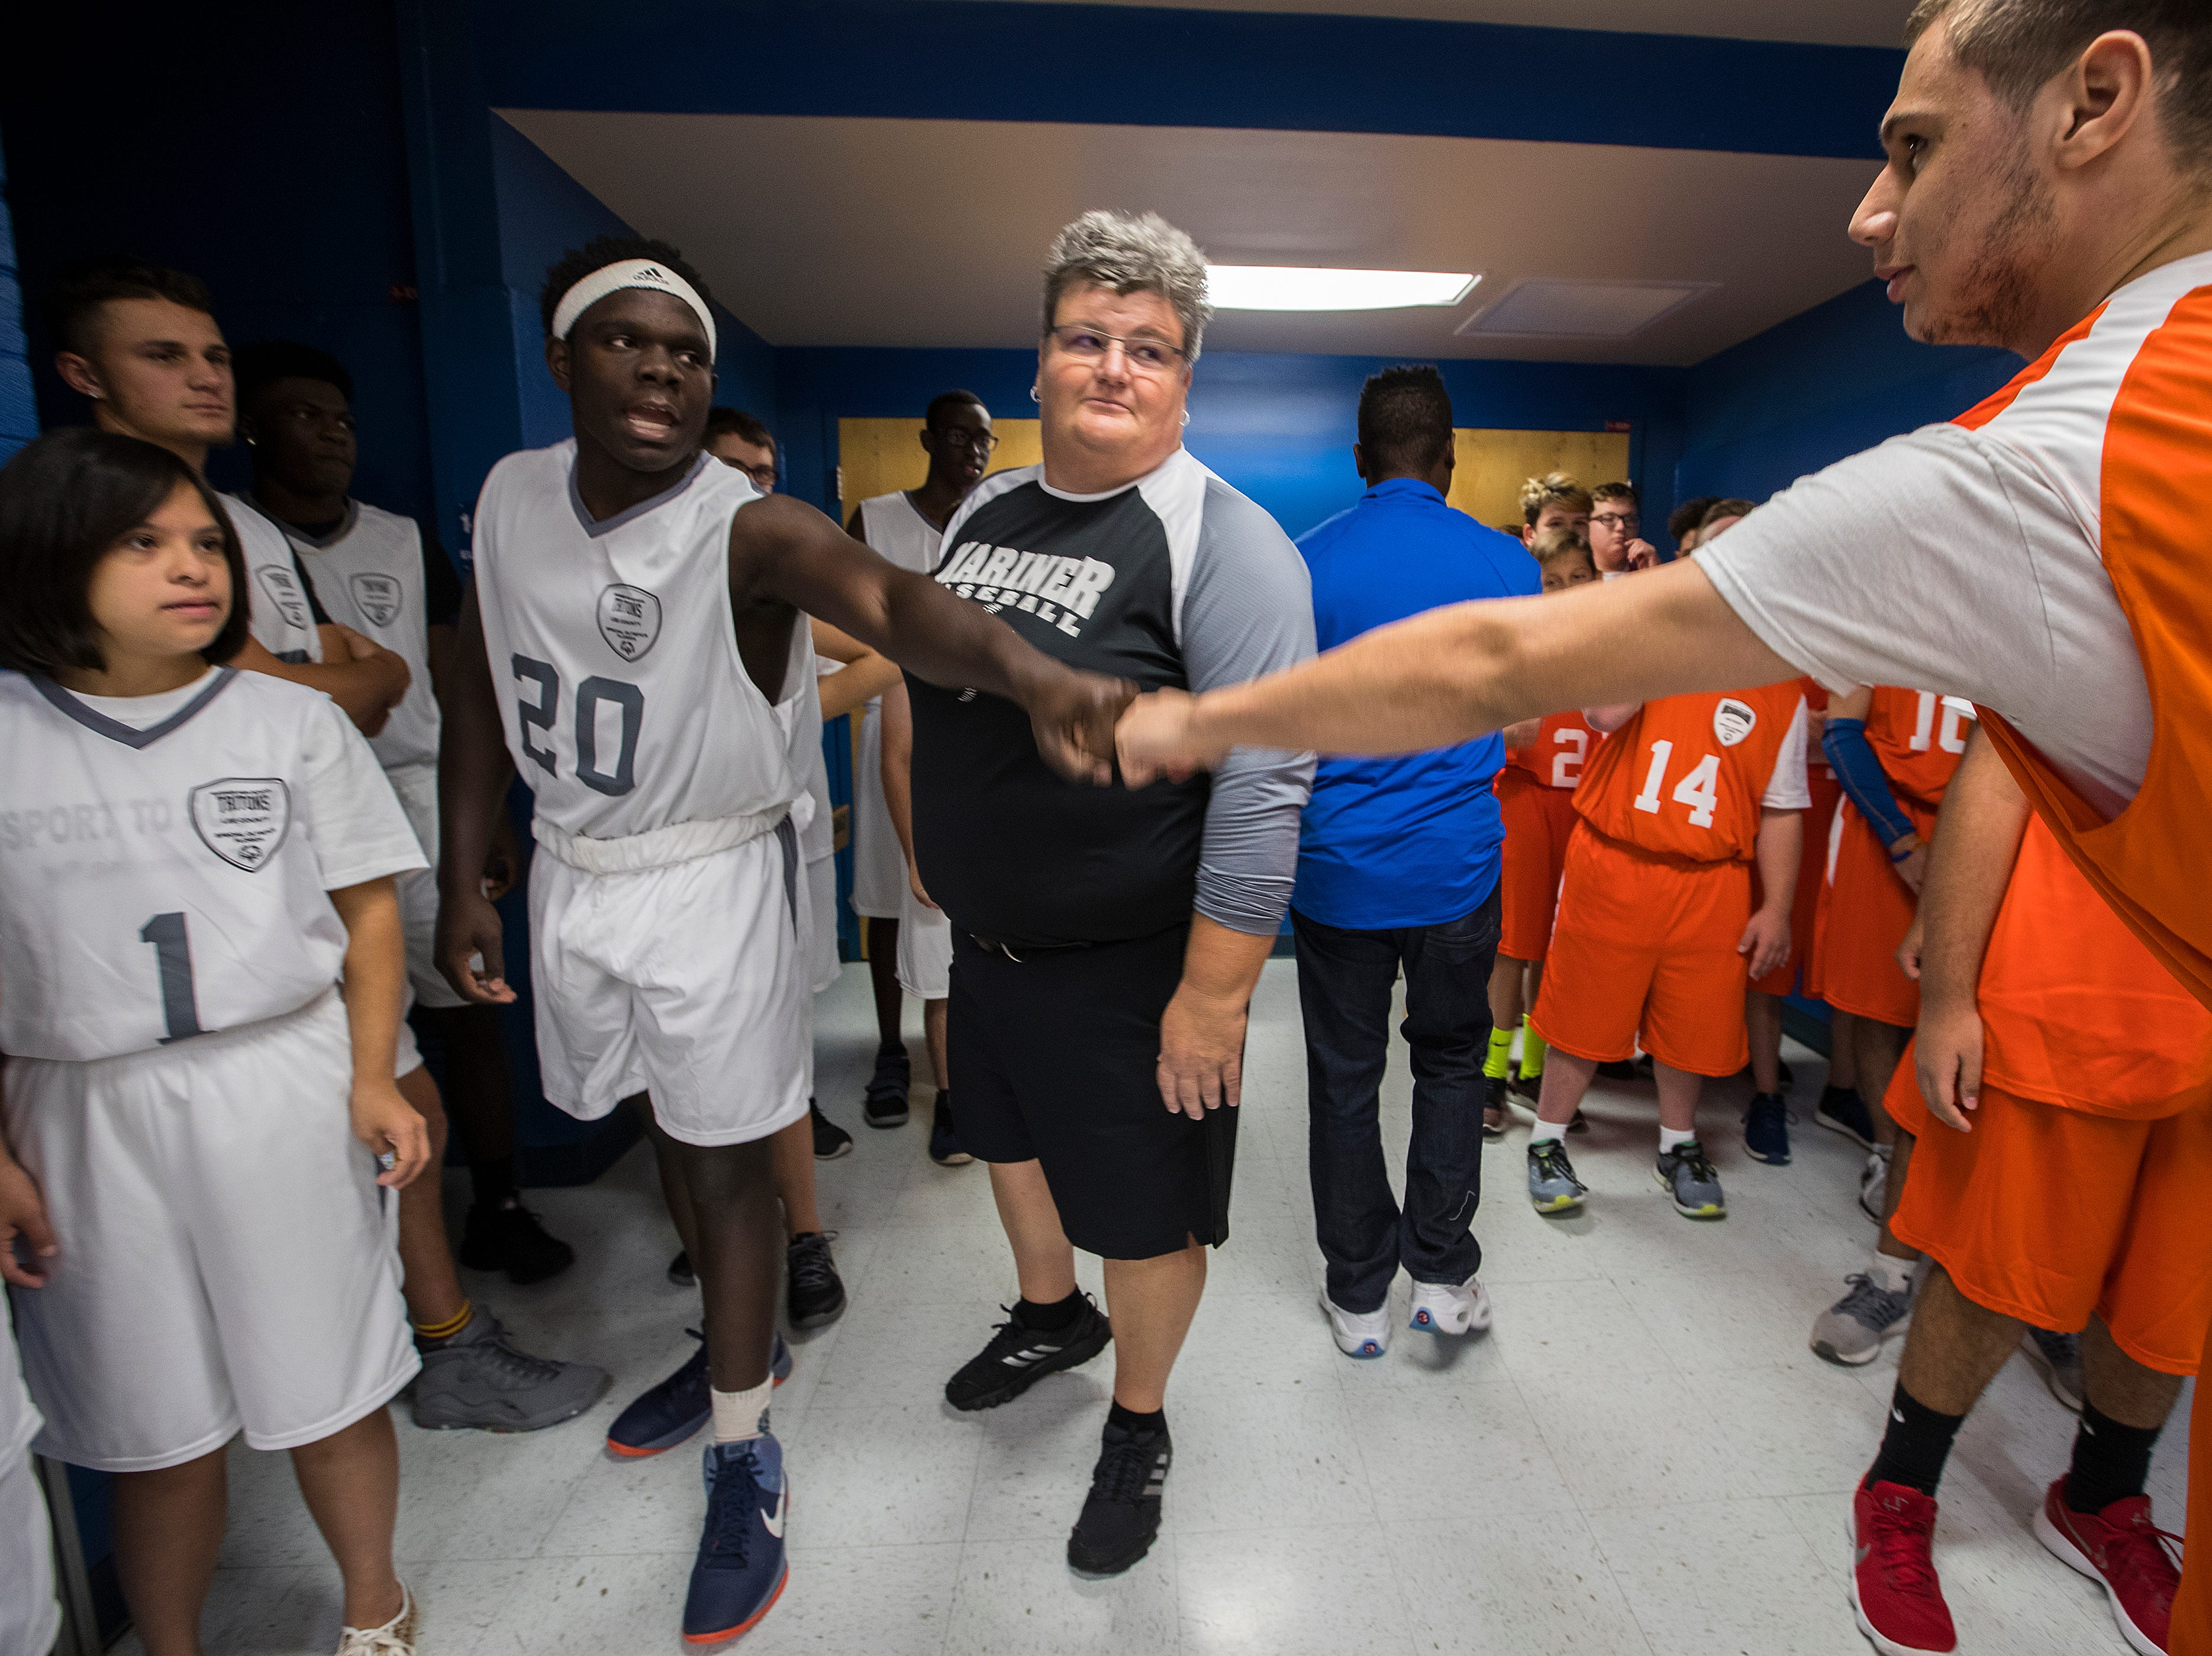 Mariner's Victor Wright, left, and Cape Coral's Luis Duran, pump fists prior to their game Friday morning, November 16, 2018. Cape Coral High hosted Mariner during a Unified sports basketball game at Friday, November 16, 2018. Lee County schools have significantly expanded the size, reach and potential impact of its Special Olympics commitment this year with the addition of what is known as Unified sports, in which students with and without disabilities work together on organized teams for a season. A number of Lee County high schools are participating this first year and are playing already in basketball, one of four high school Special Olympics sports. Track and field will be held in the spring. Flag football and soccer will be added in the future and reach the middle school level. The goal: greater participation, inclusion and understanding.